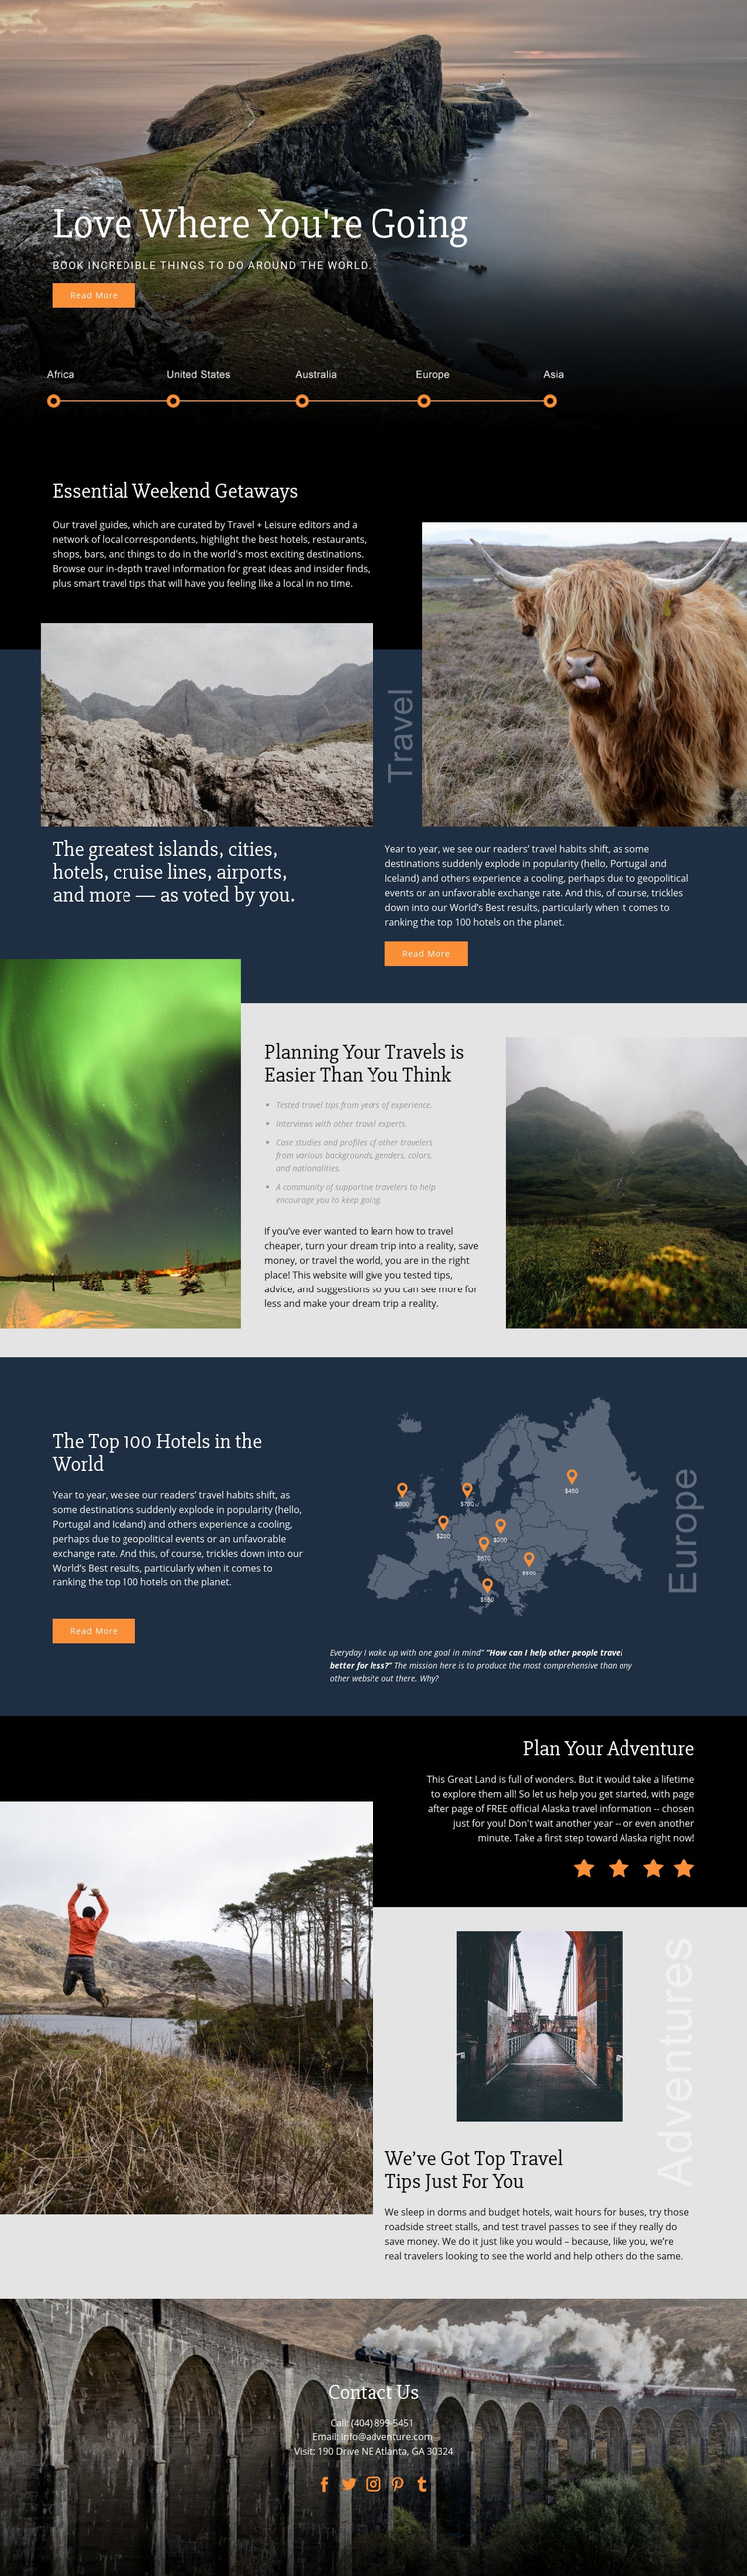 Planning Your Travel Web Page Design